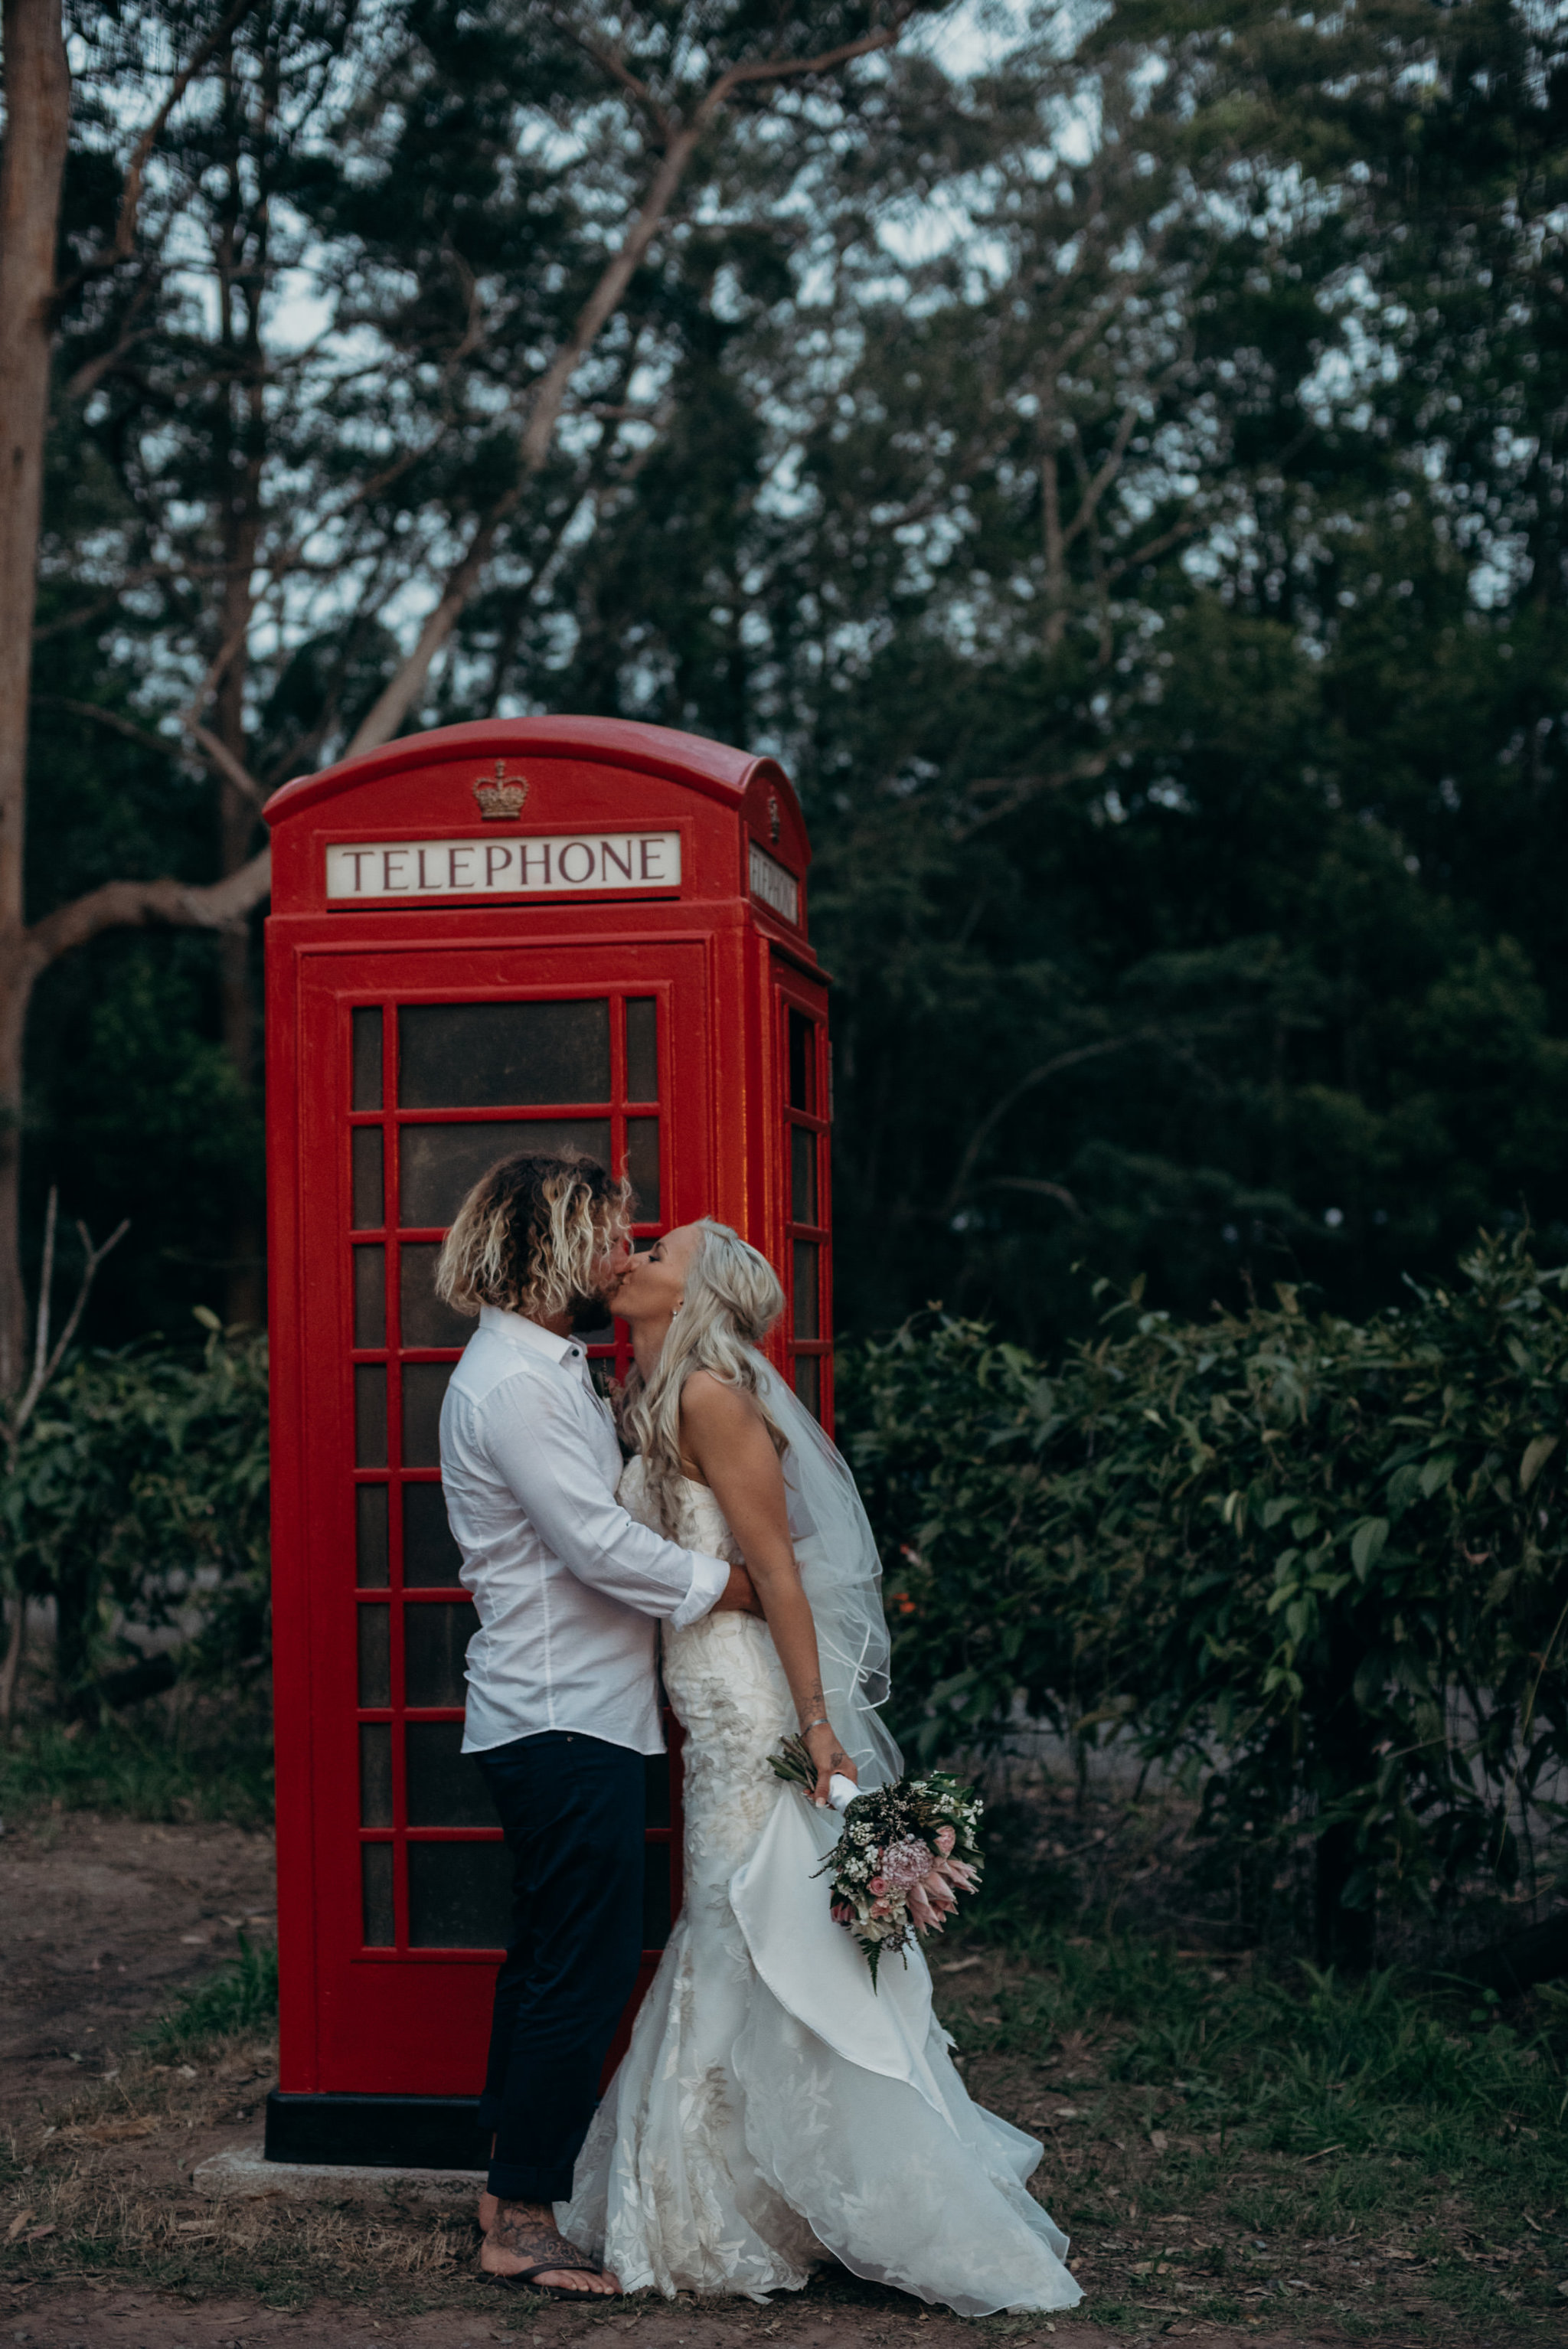 The Penny & Button Eumundi with Sunshine Coast Pop Up Weddings